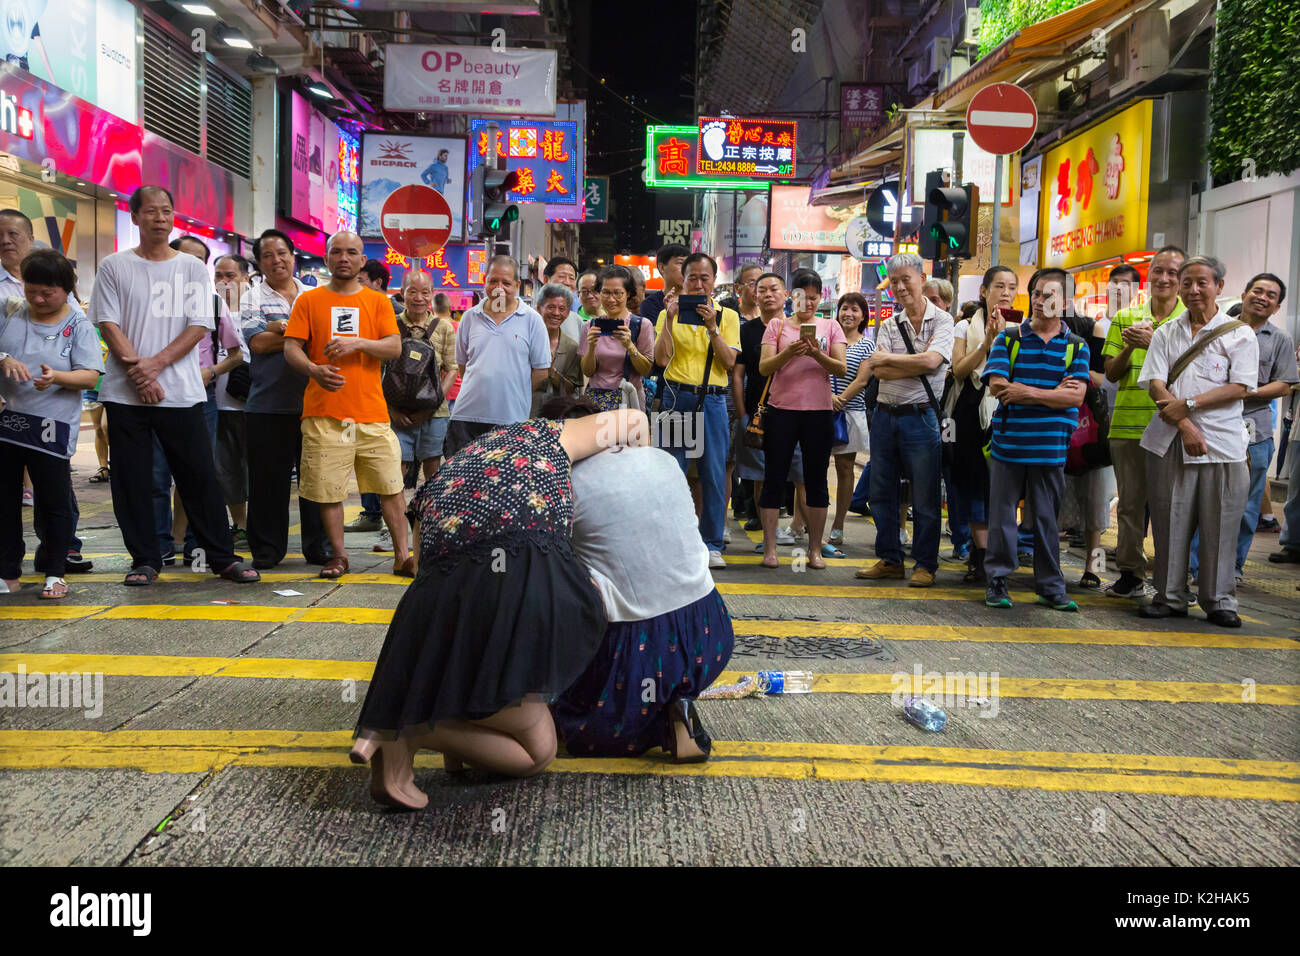 Crowd during live performance in the streets of Mong Kok on a Saturday night. - Stock Image